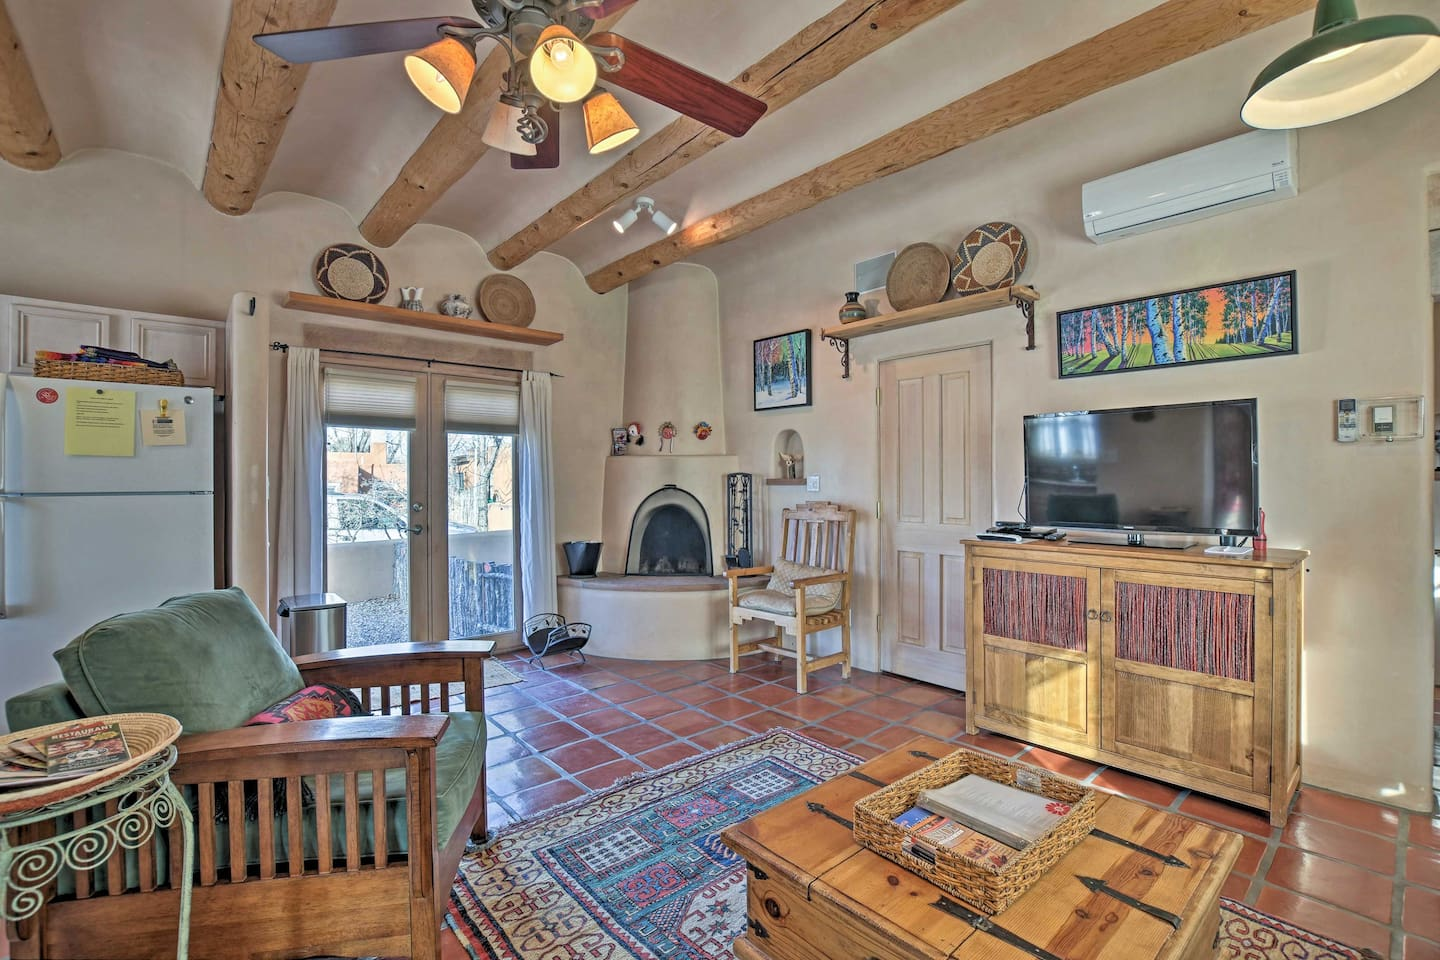 This 2-bedroom, 2-bath vacation rental home in Santa Fe is the perfect retreat!